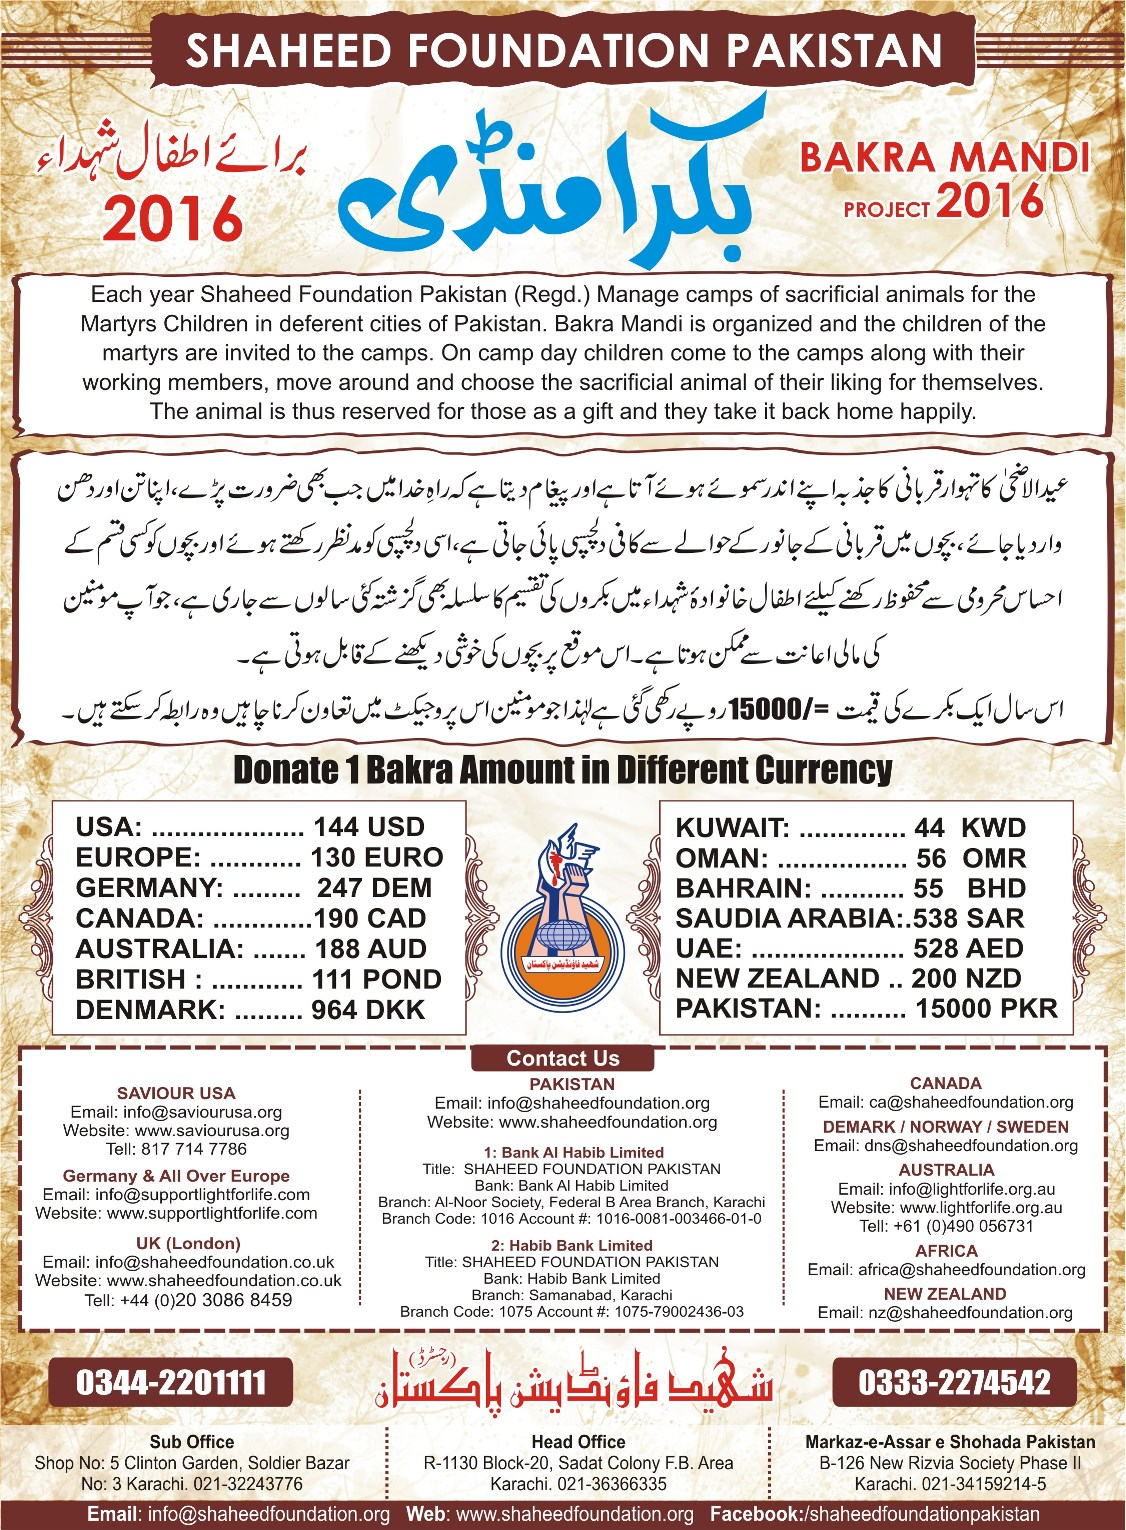 Bakra Mandi 2016 for Martyrs Children